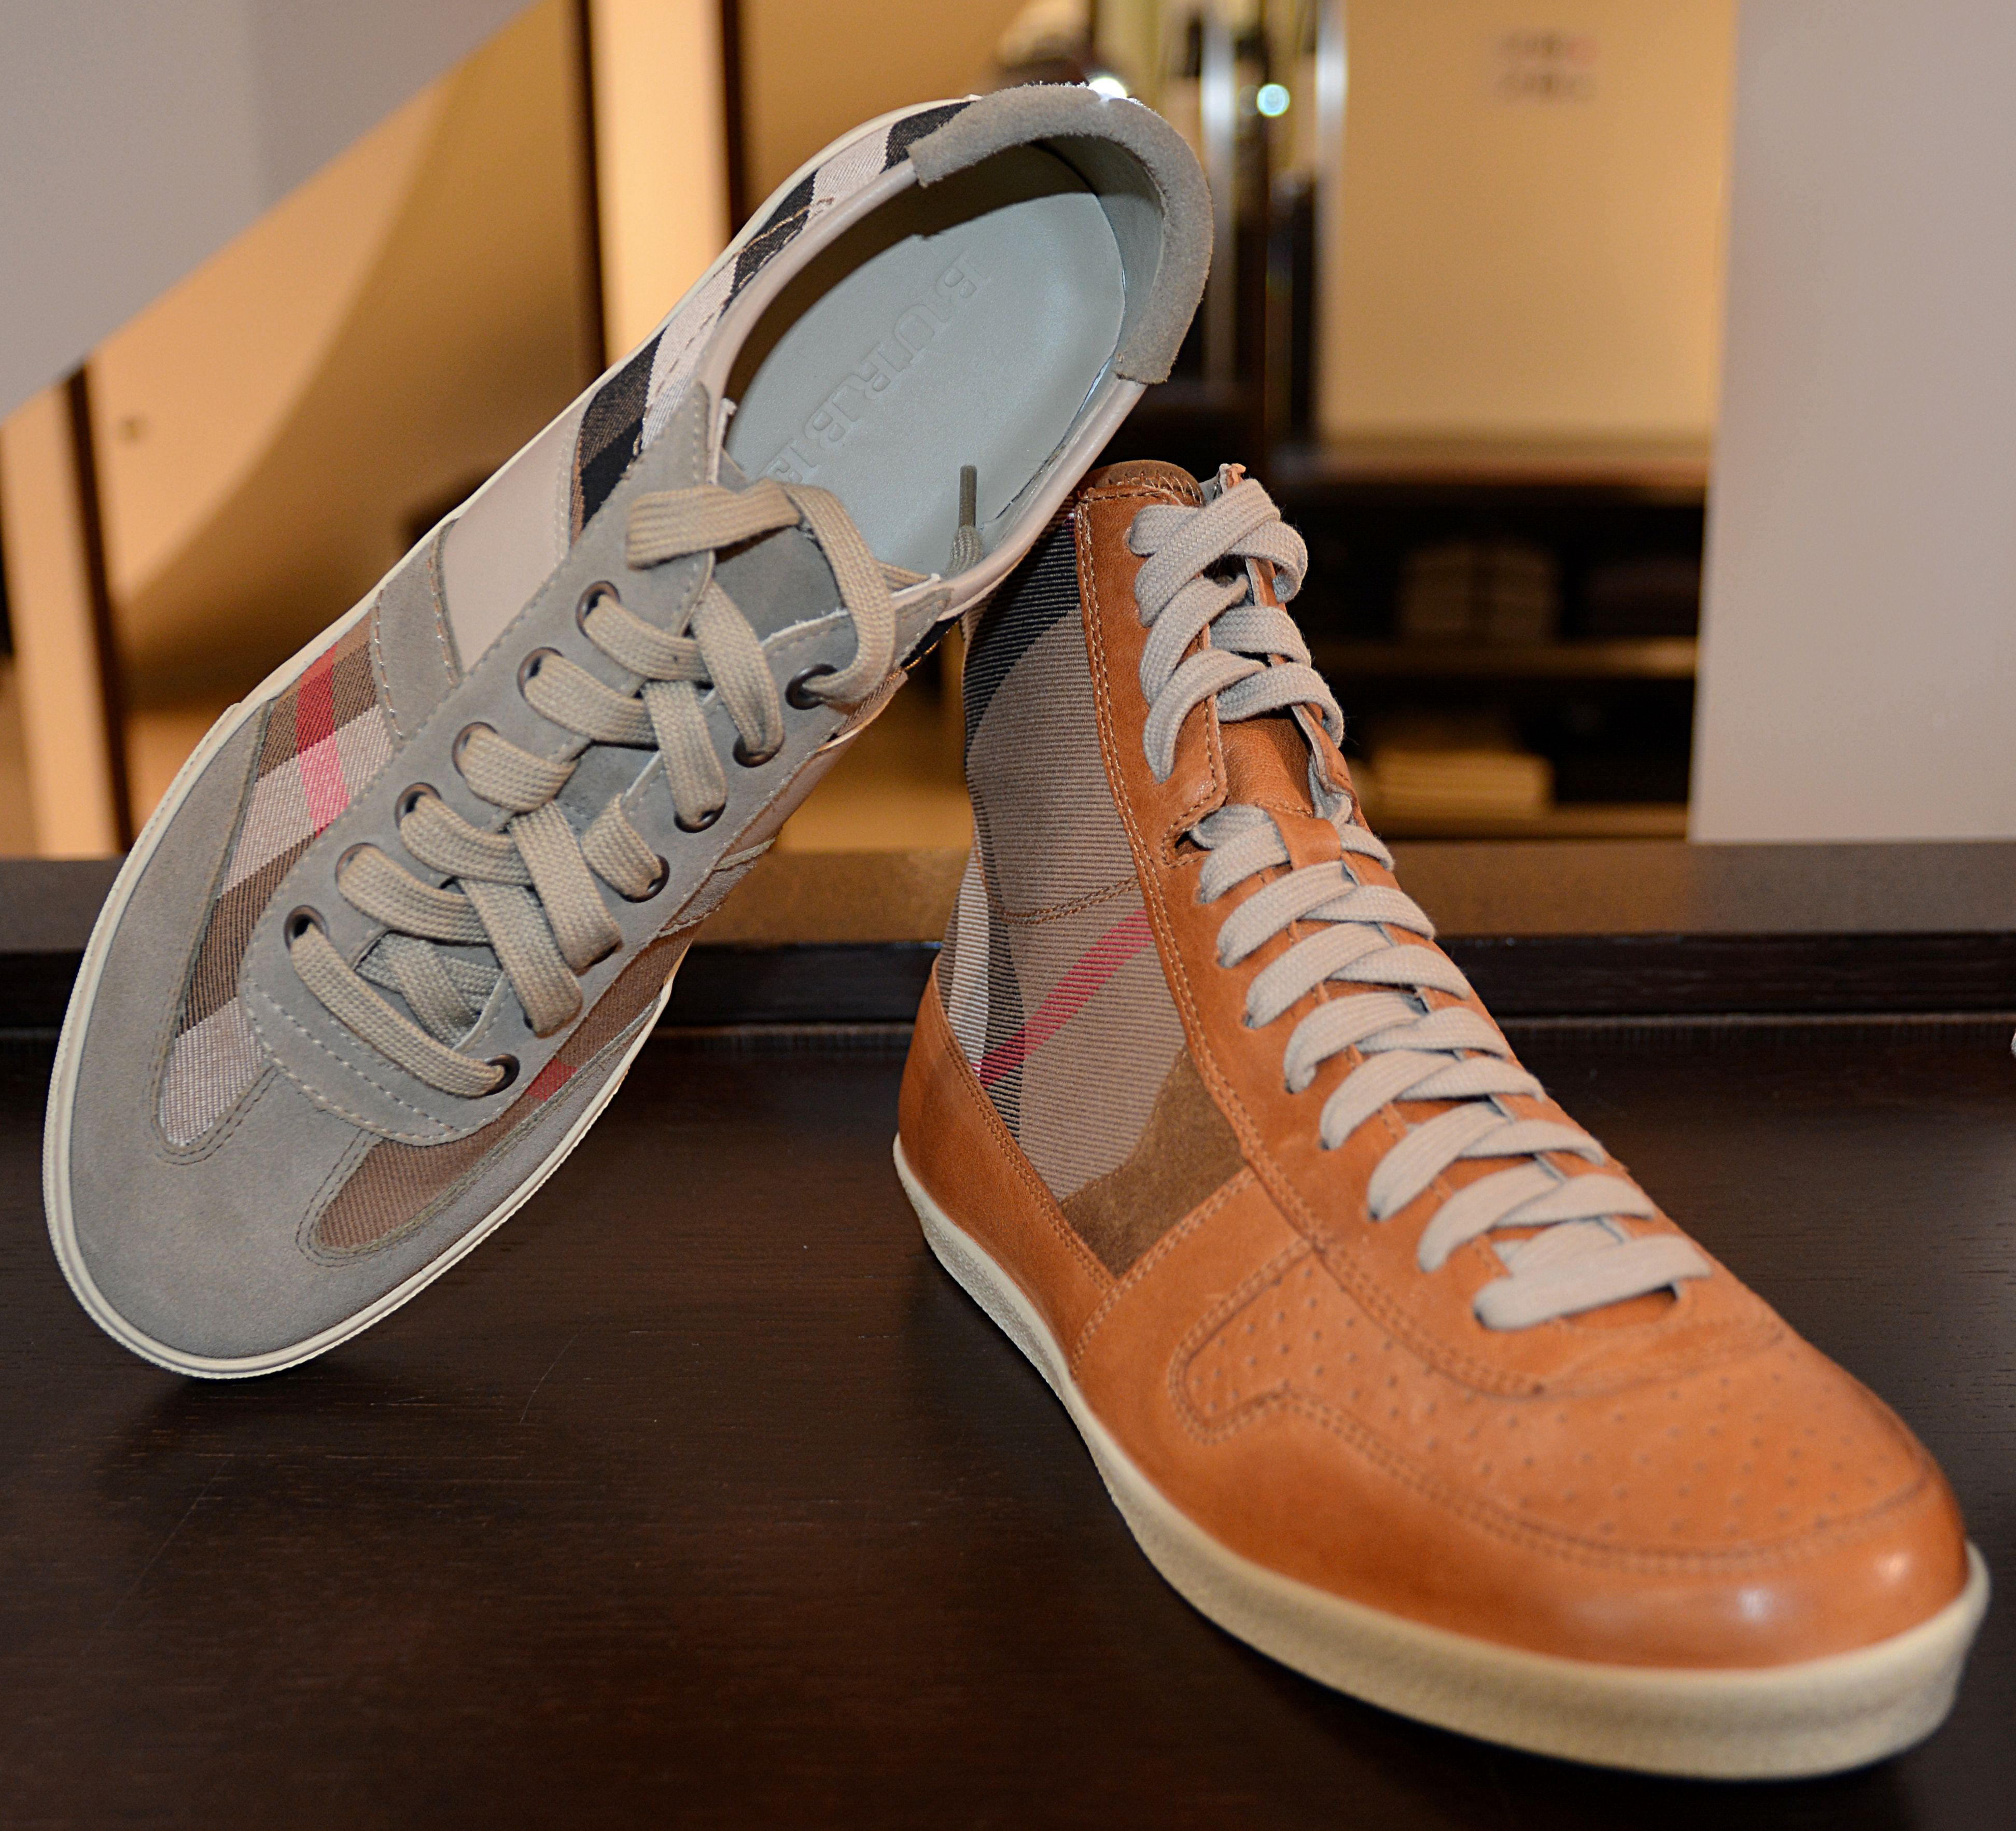 Wwfxtr Burberry Chaussures Pinterest Homme Shoes Man 0knw8OPX